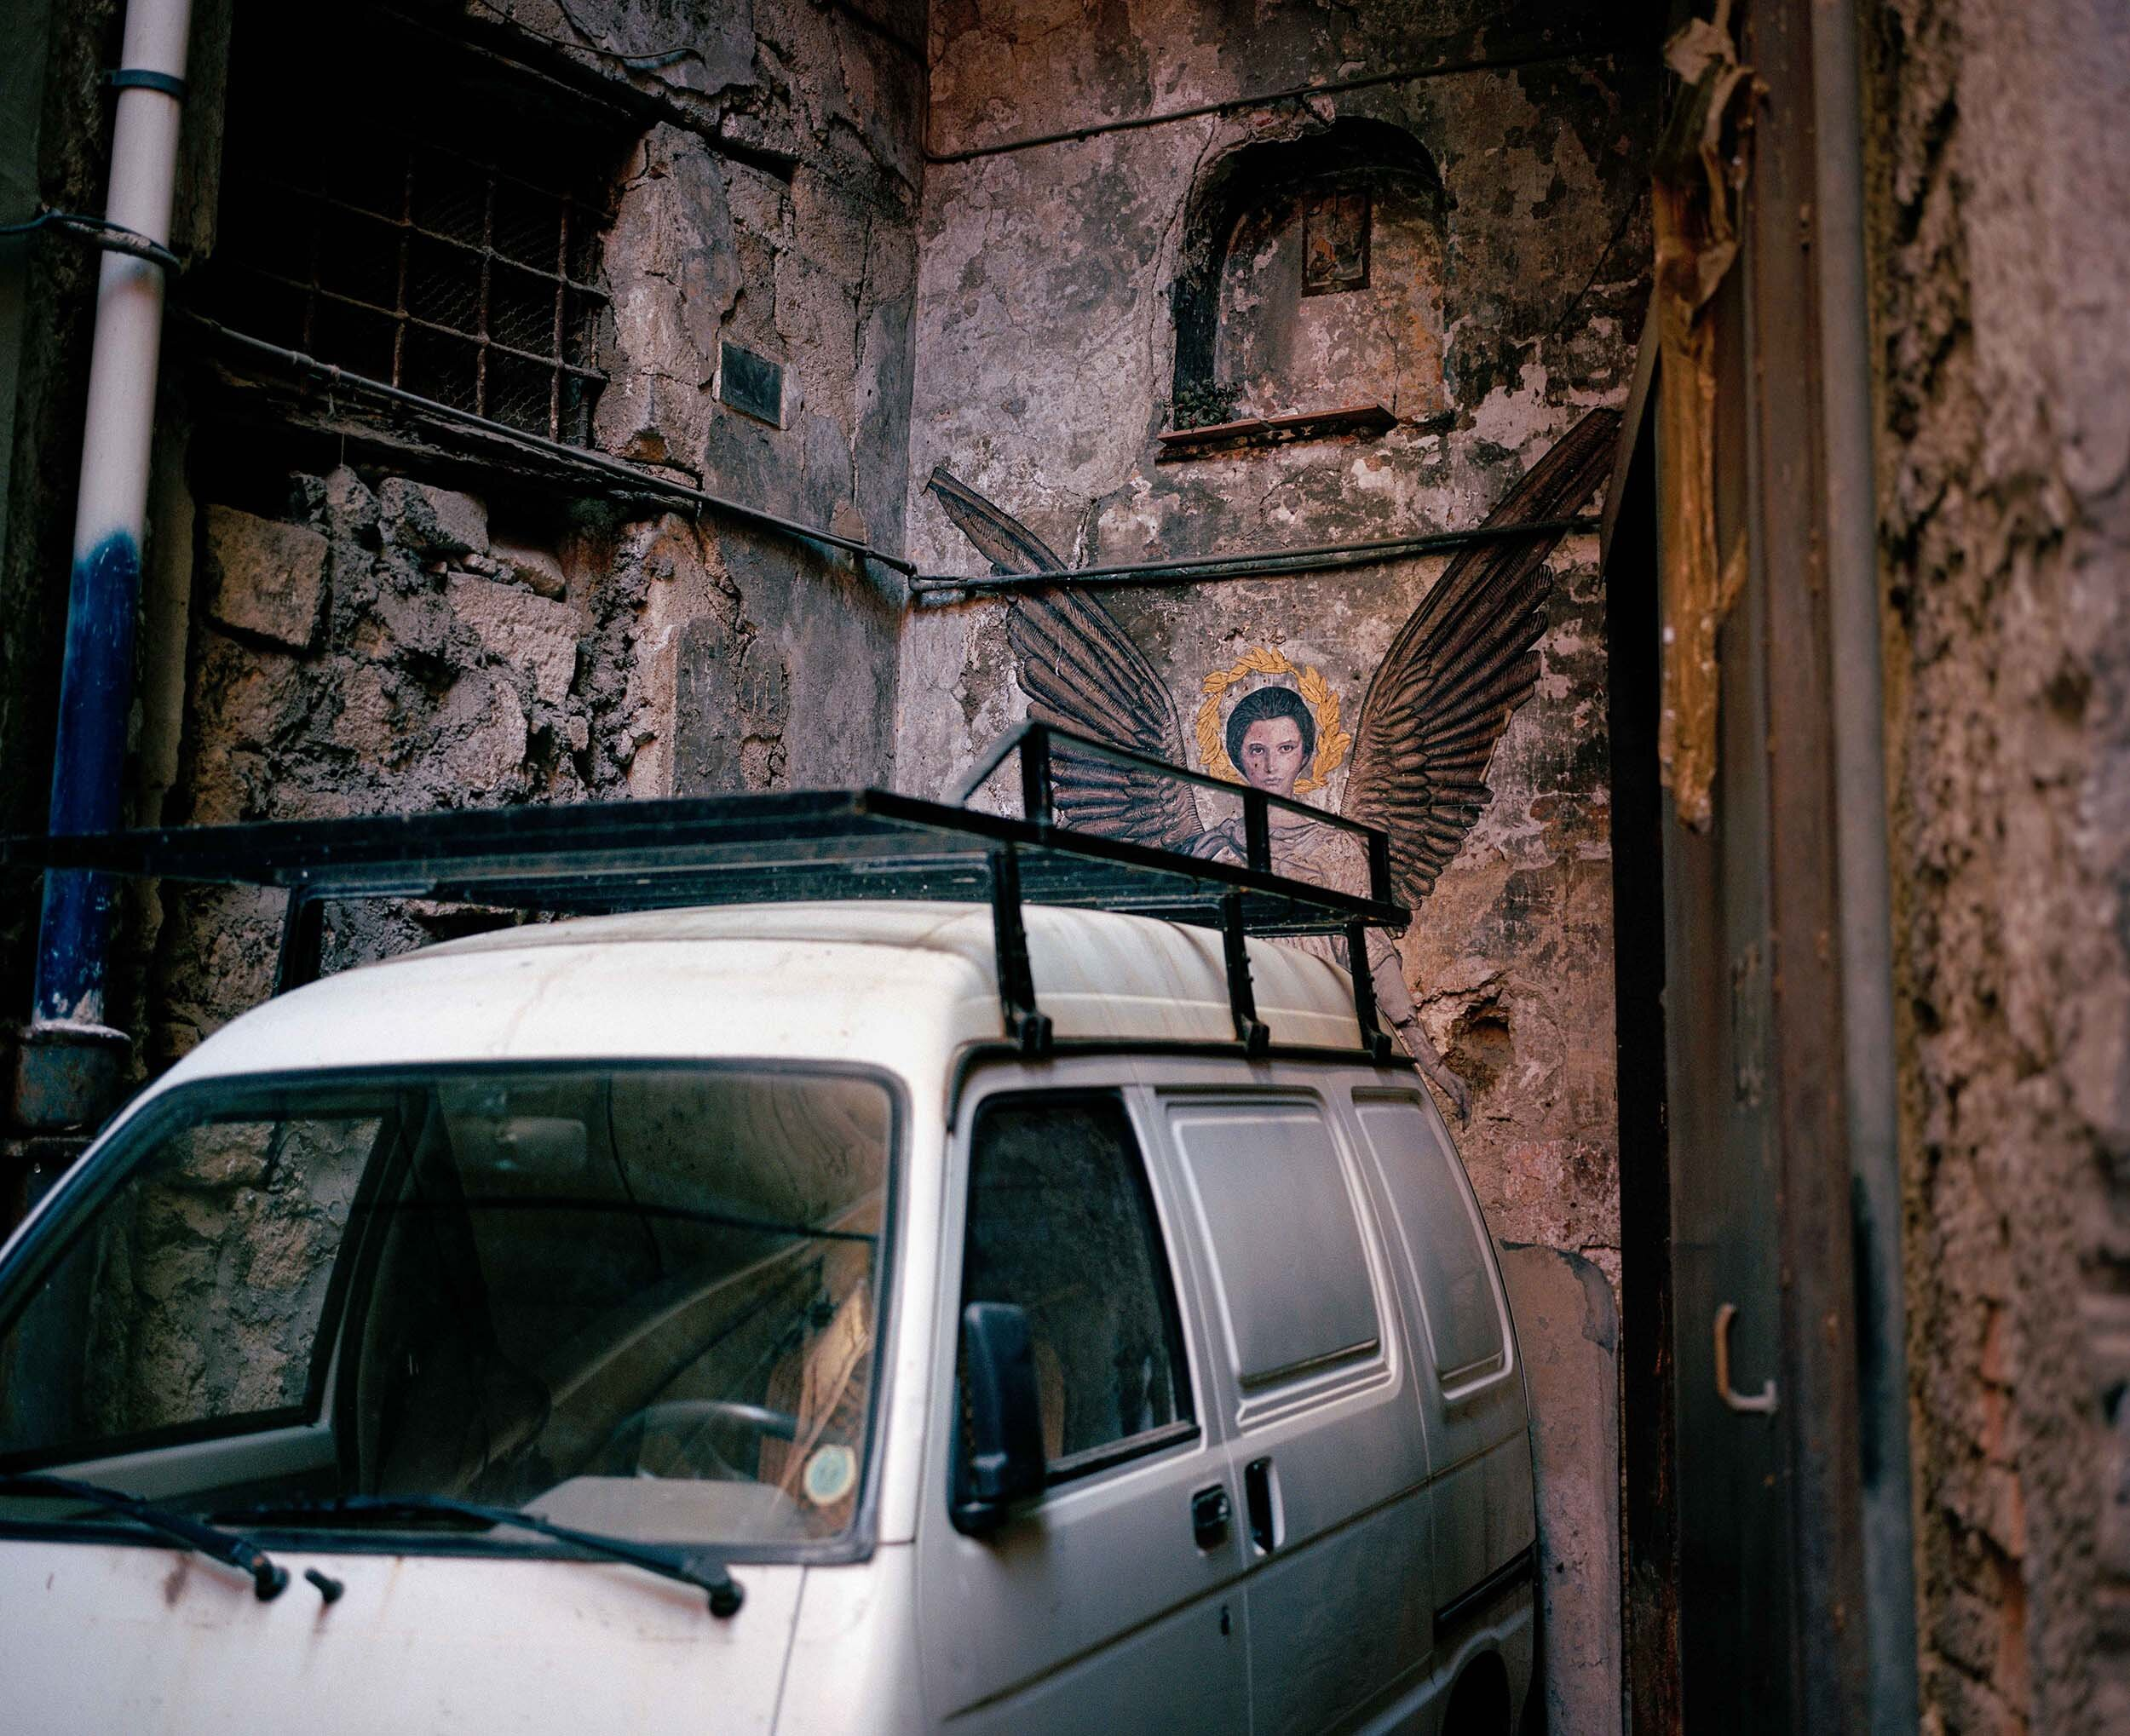 53-see-naples-and-die-sam-gregg-napoli-photography-photographer.jpg